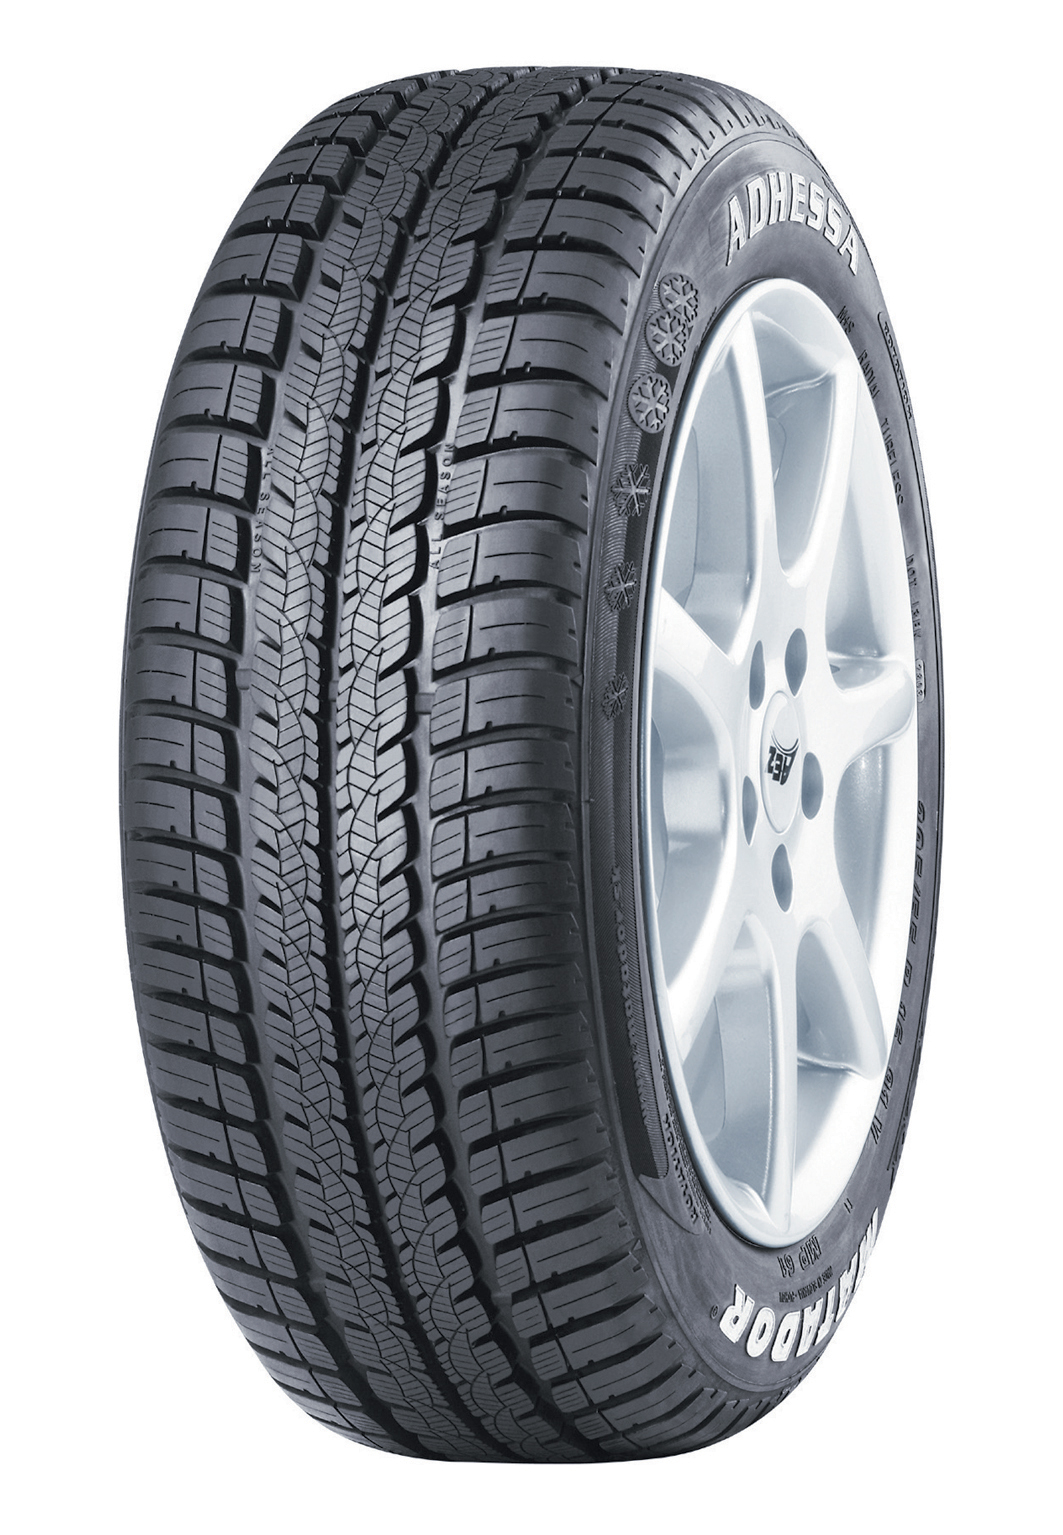 Anvelopa all seasons MATADOR MADE BY CONTINENTAL mp 61 adhessa all season 195/65 R15 91H